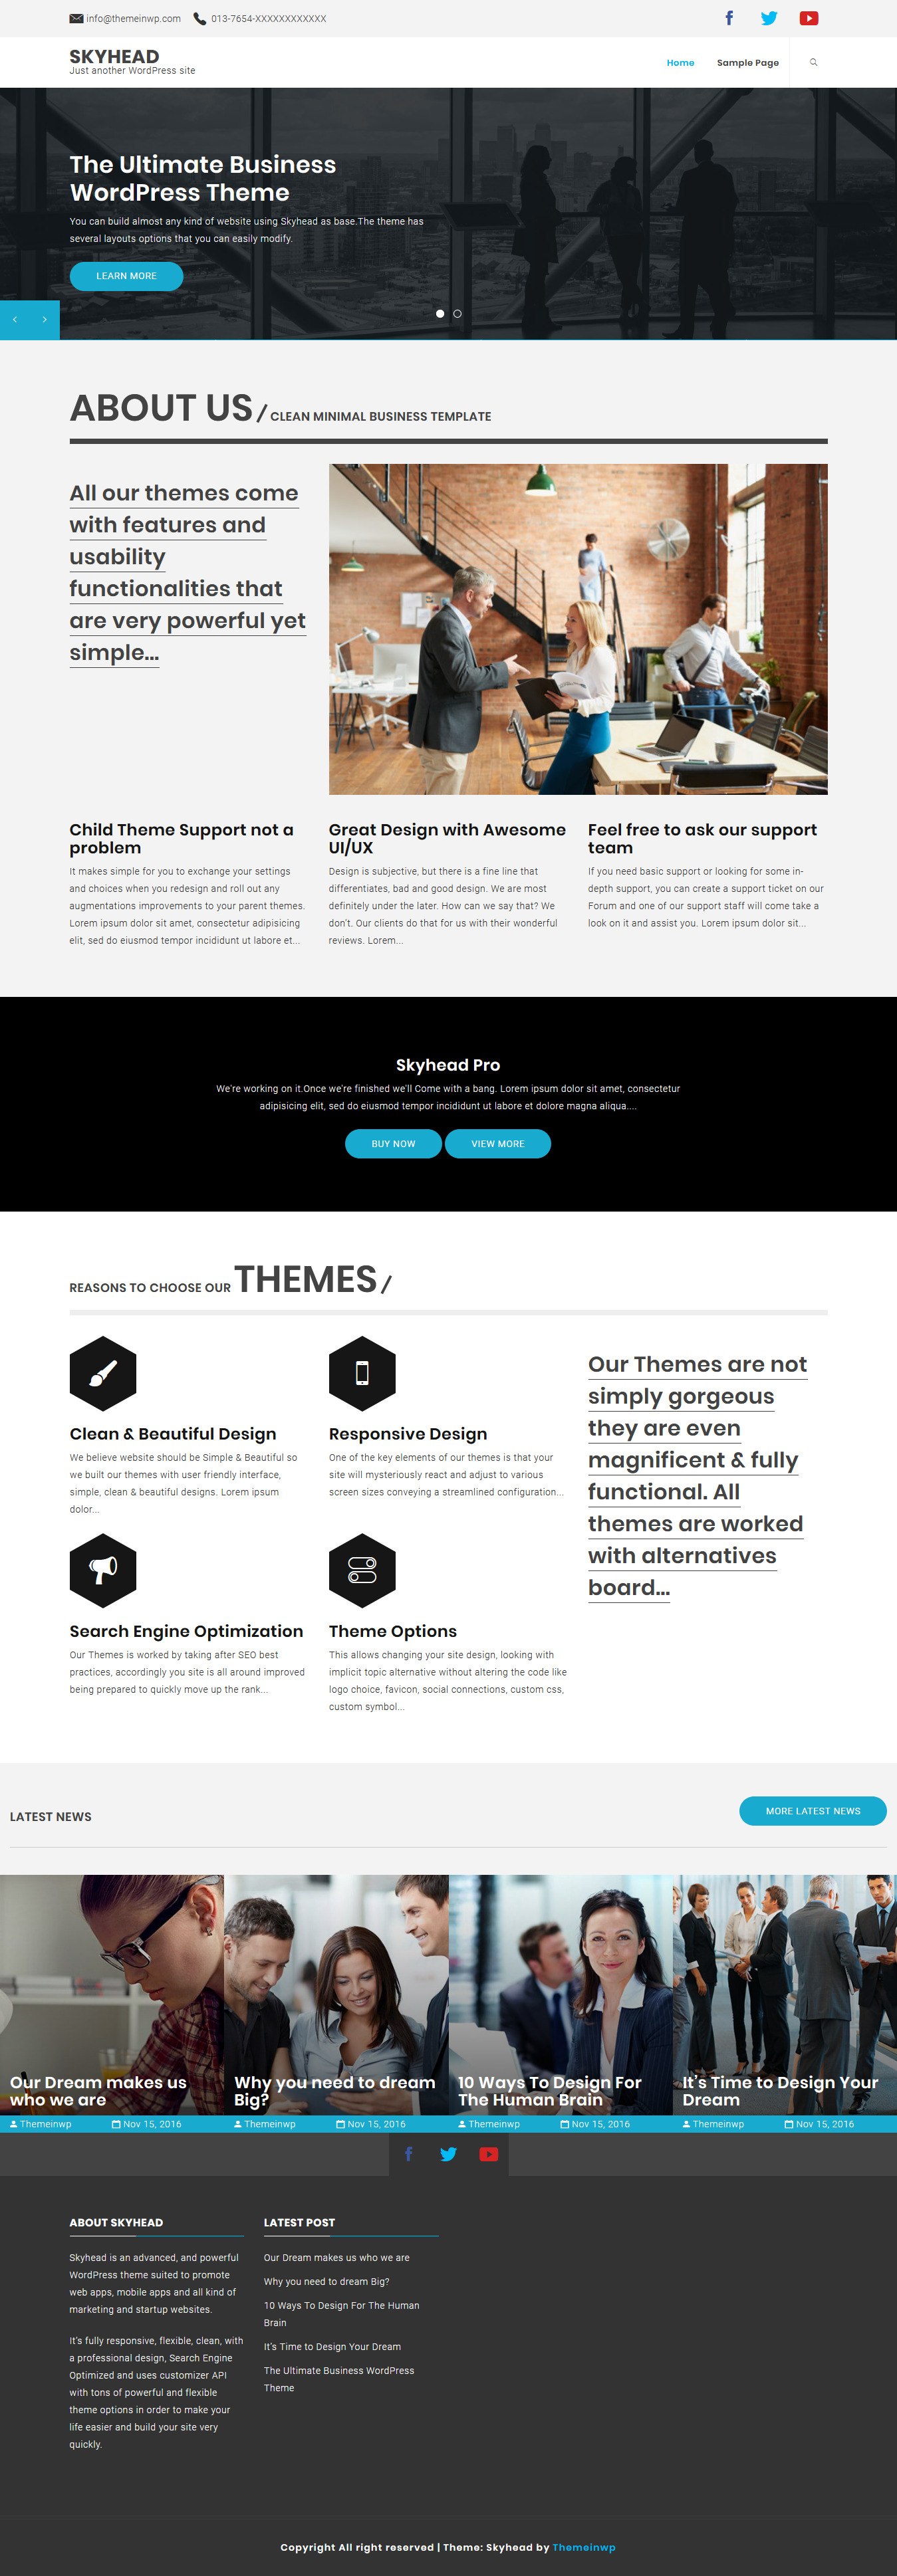 Skyhead - Best Free Mobile App WordPress Theme